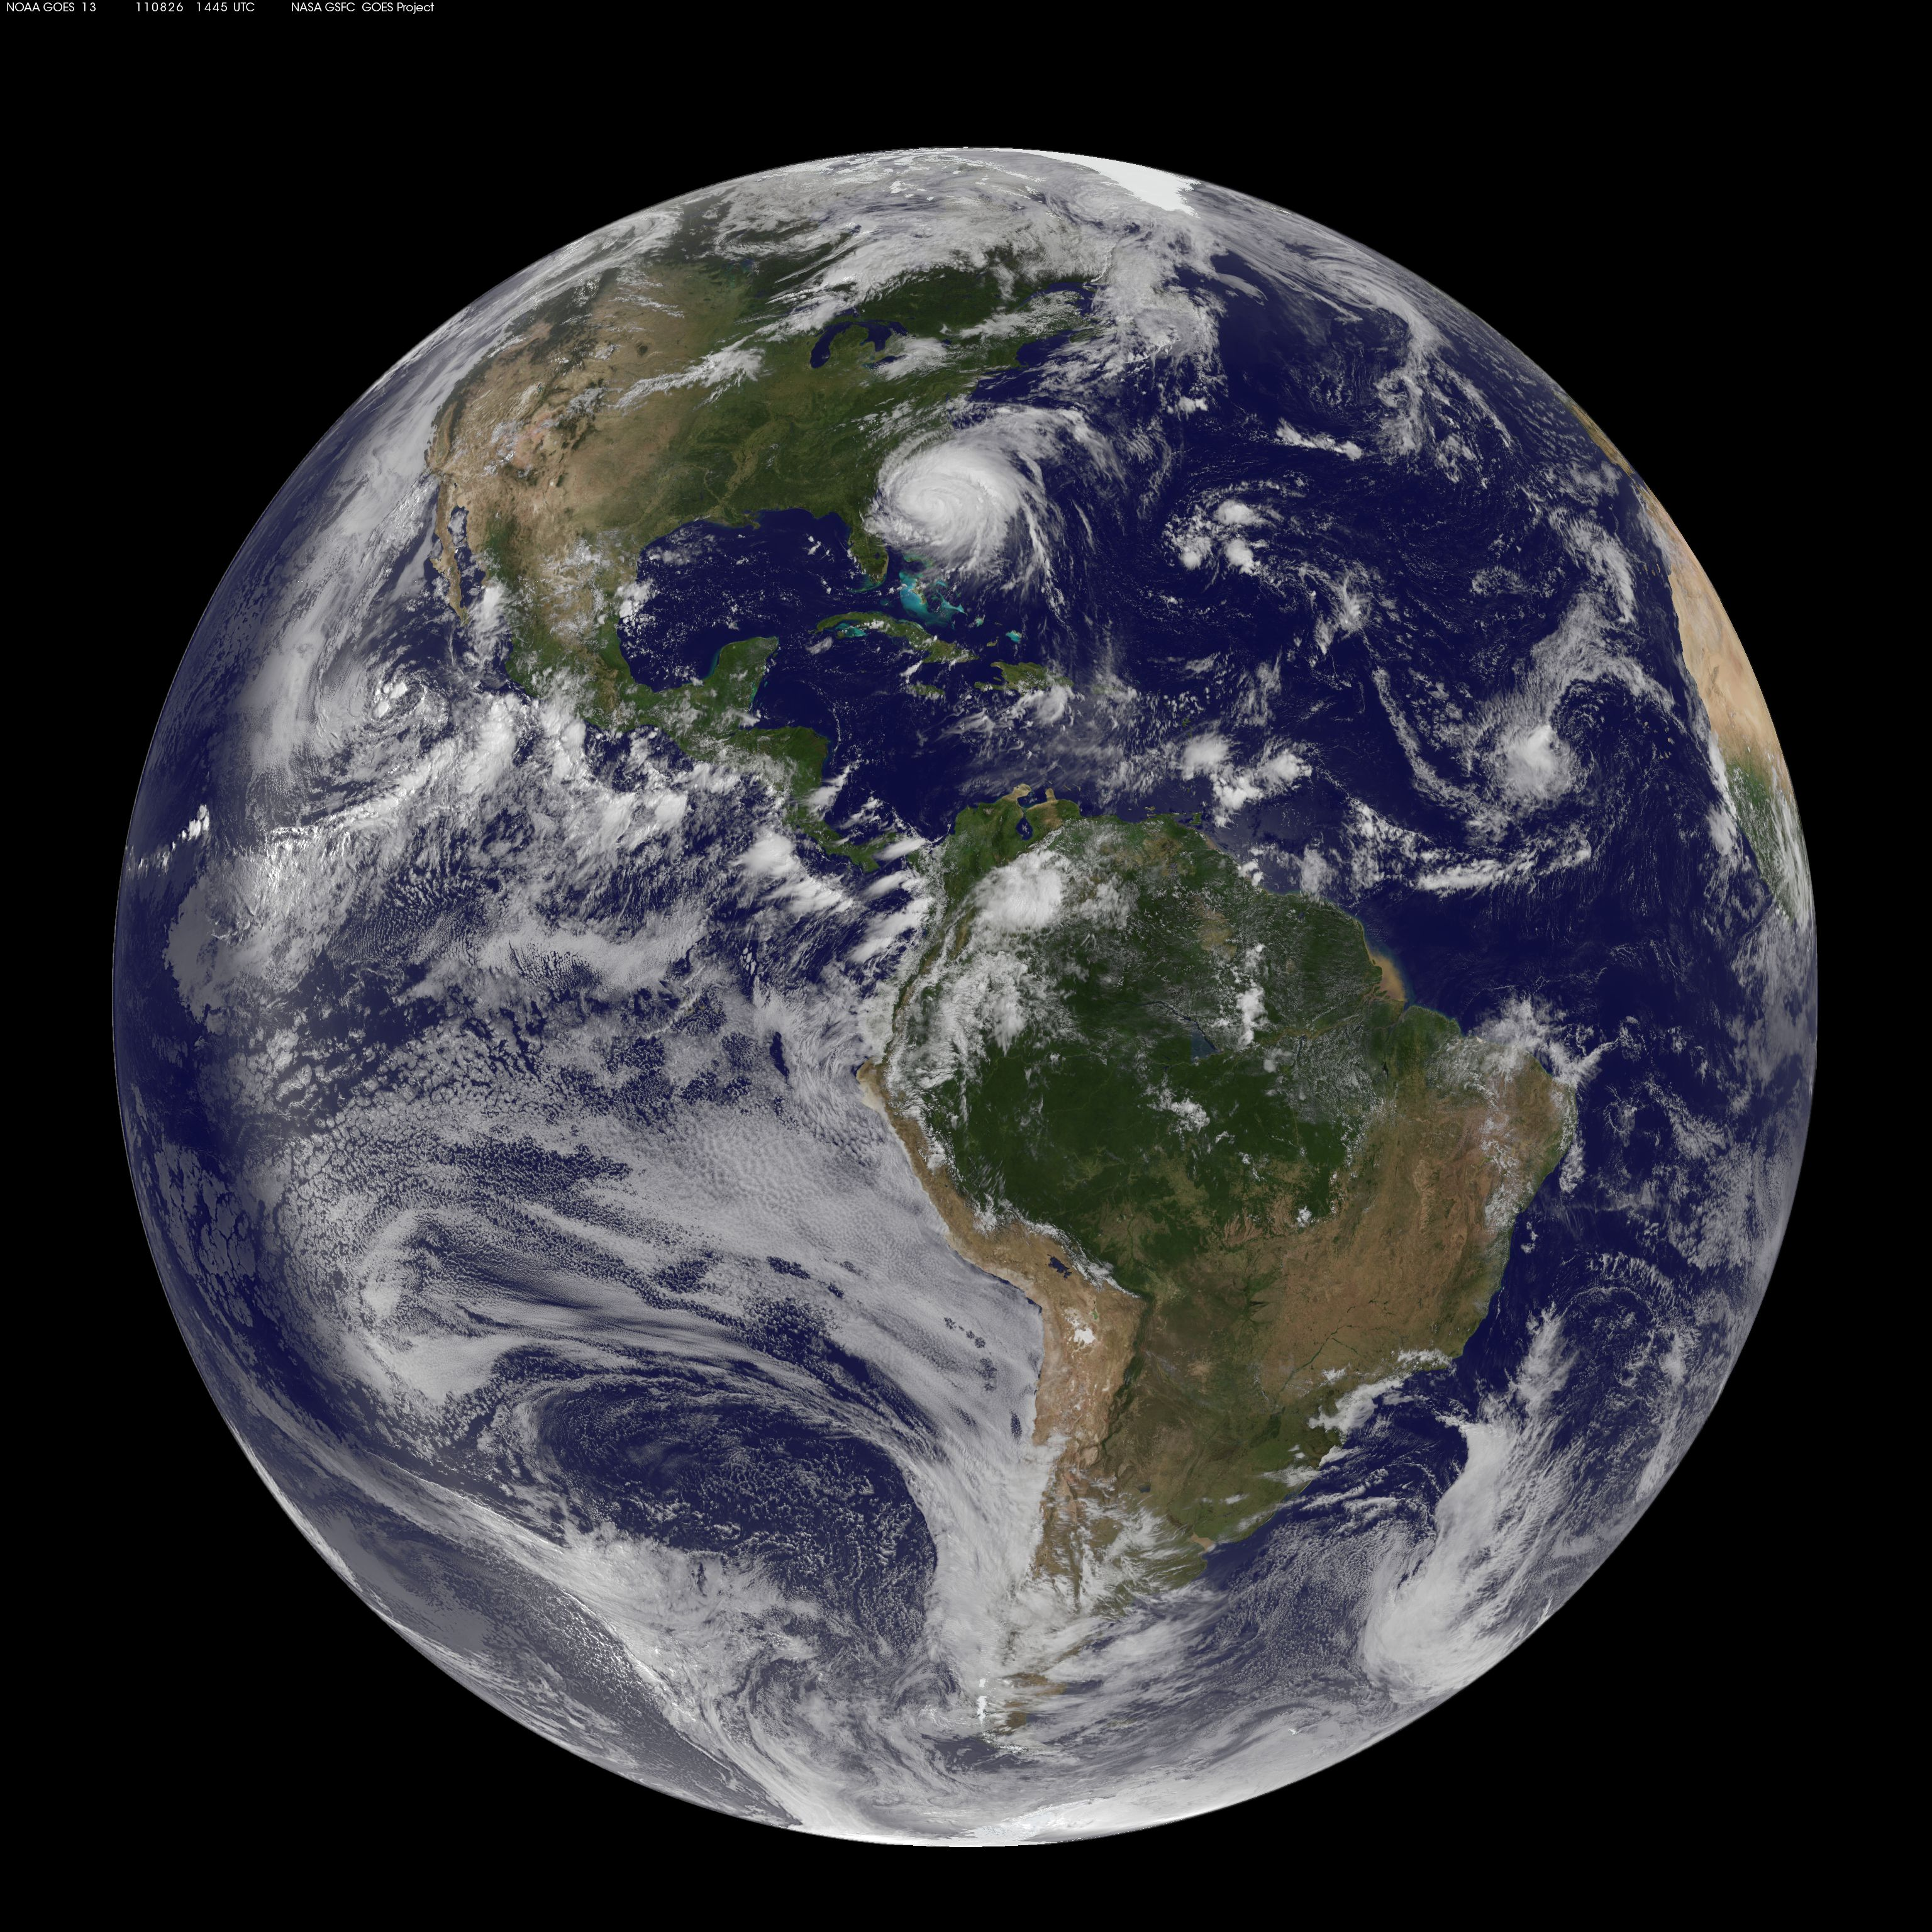 Full Disk Image Of Earth Captured August 26